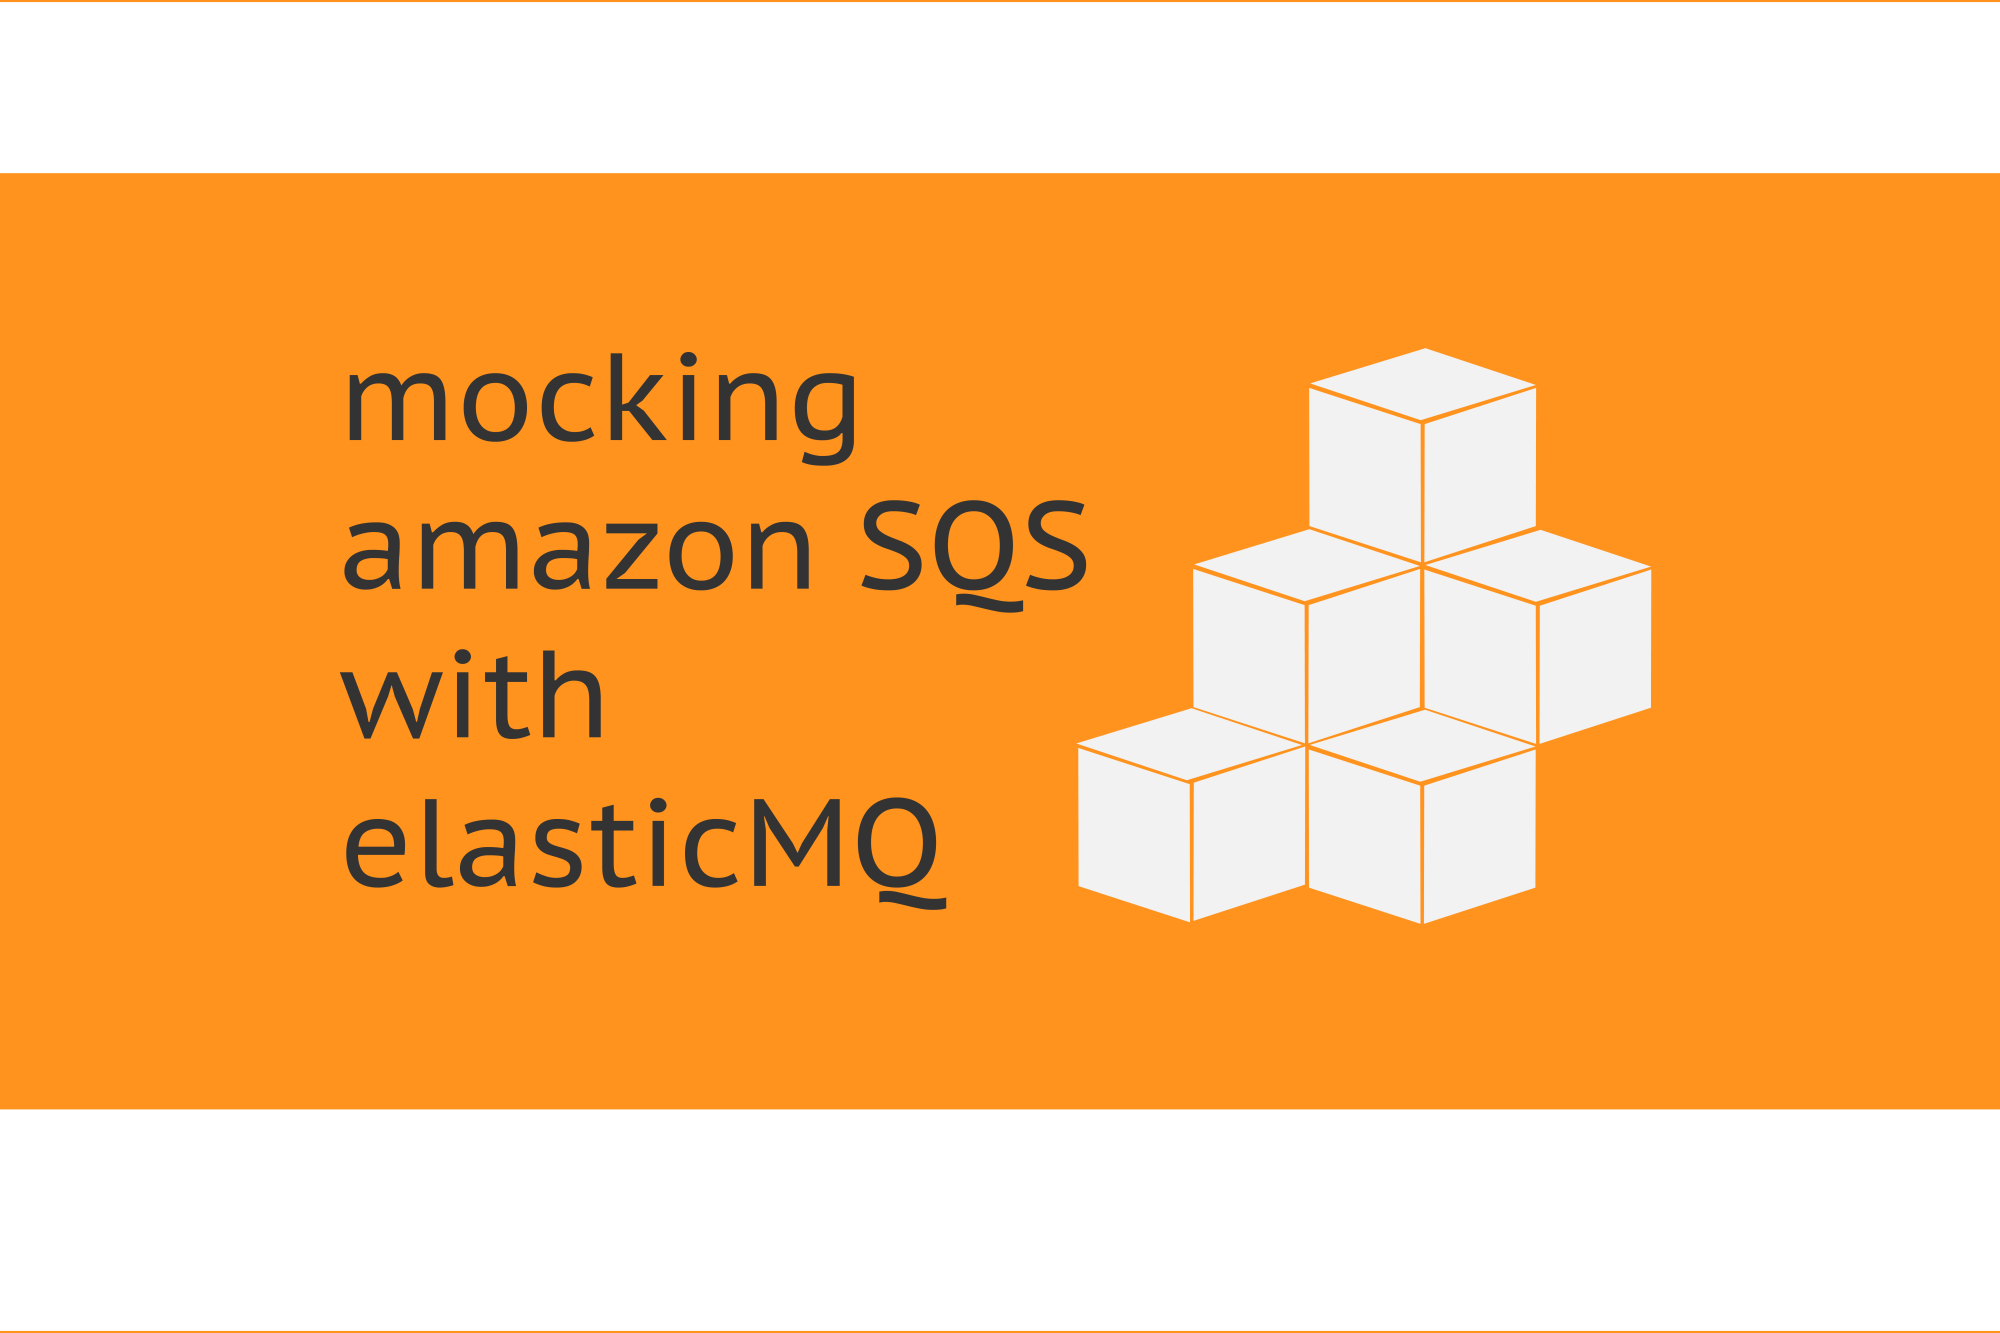 Mocking Amazon SQS with ElasticMQ